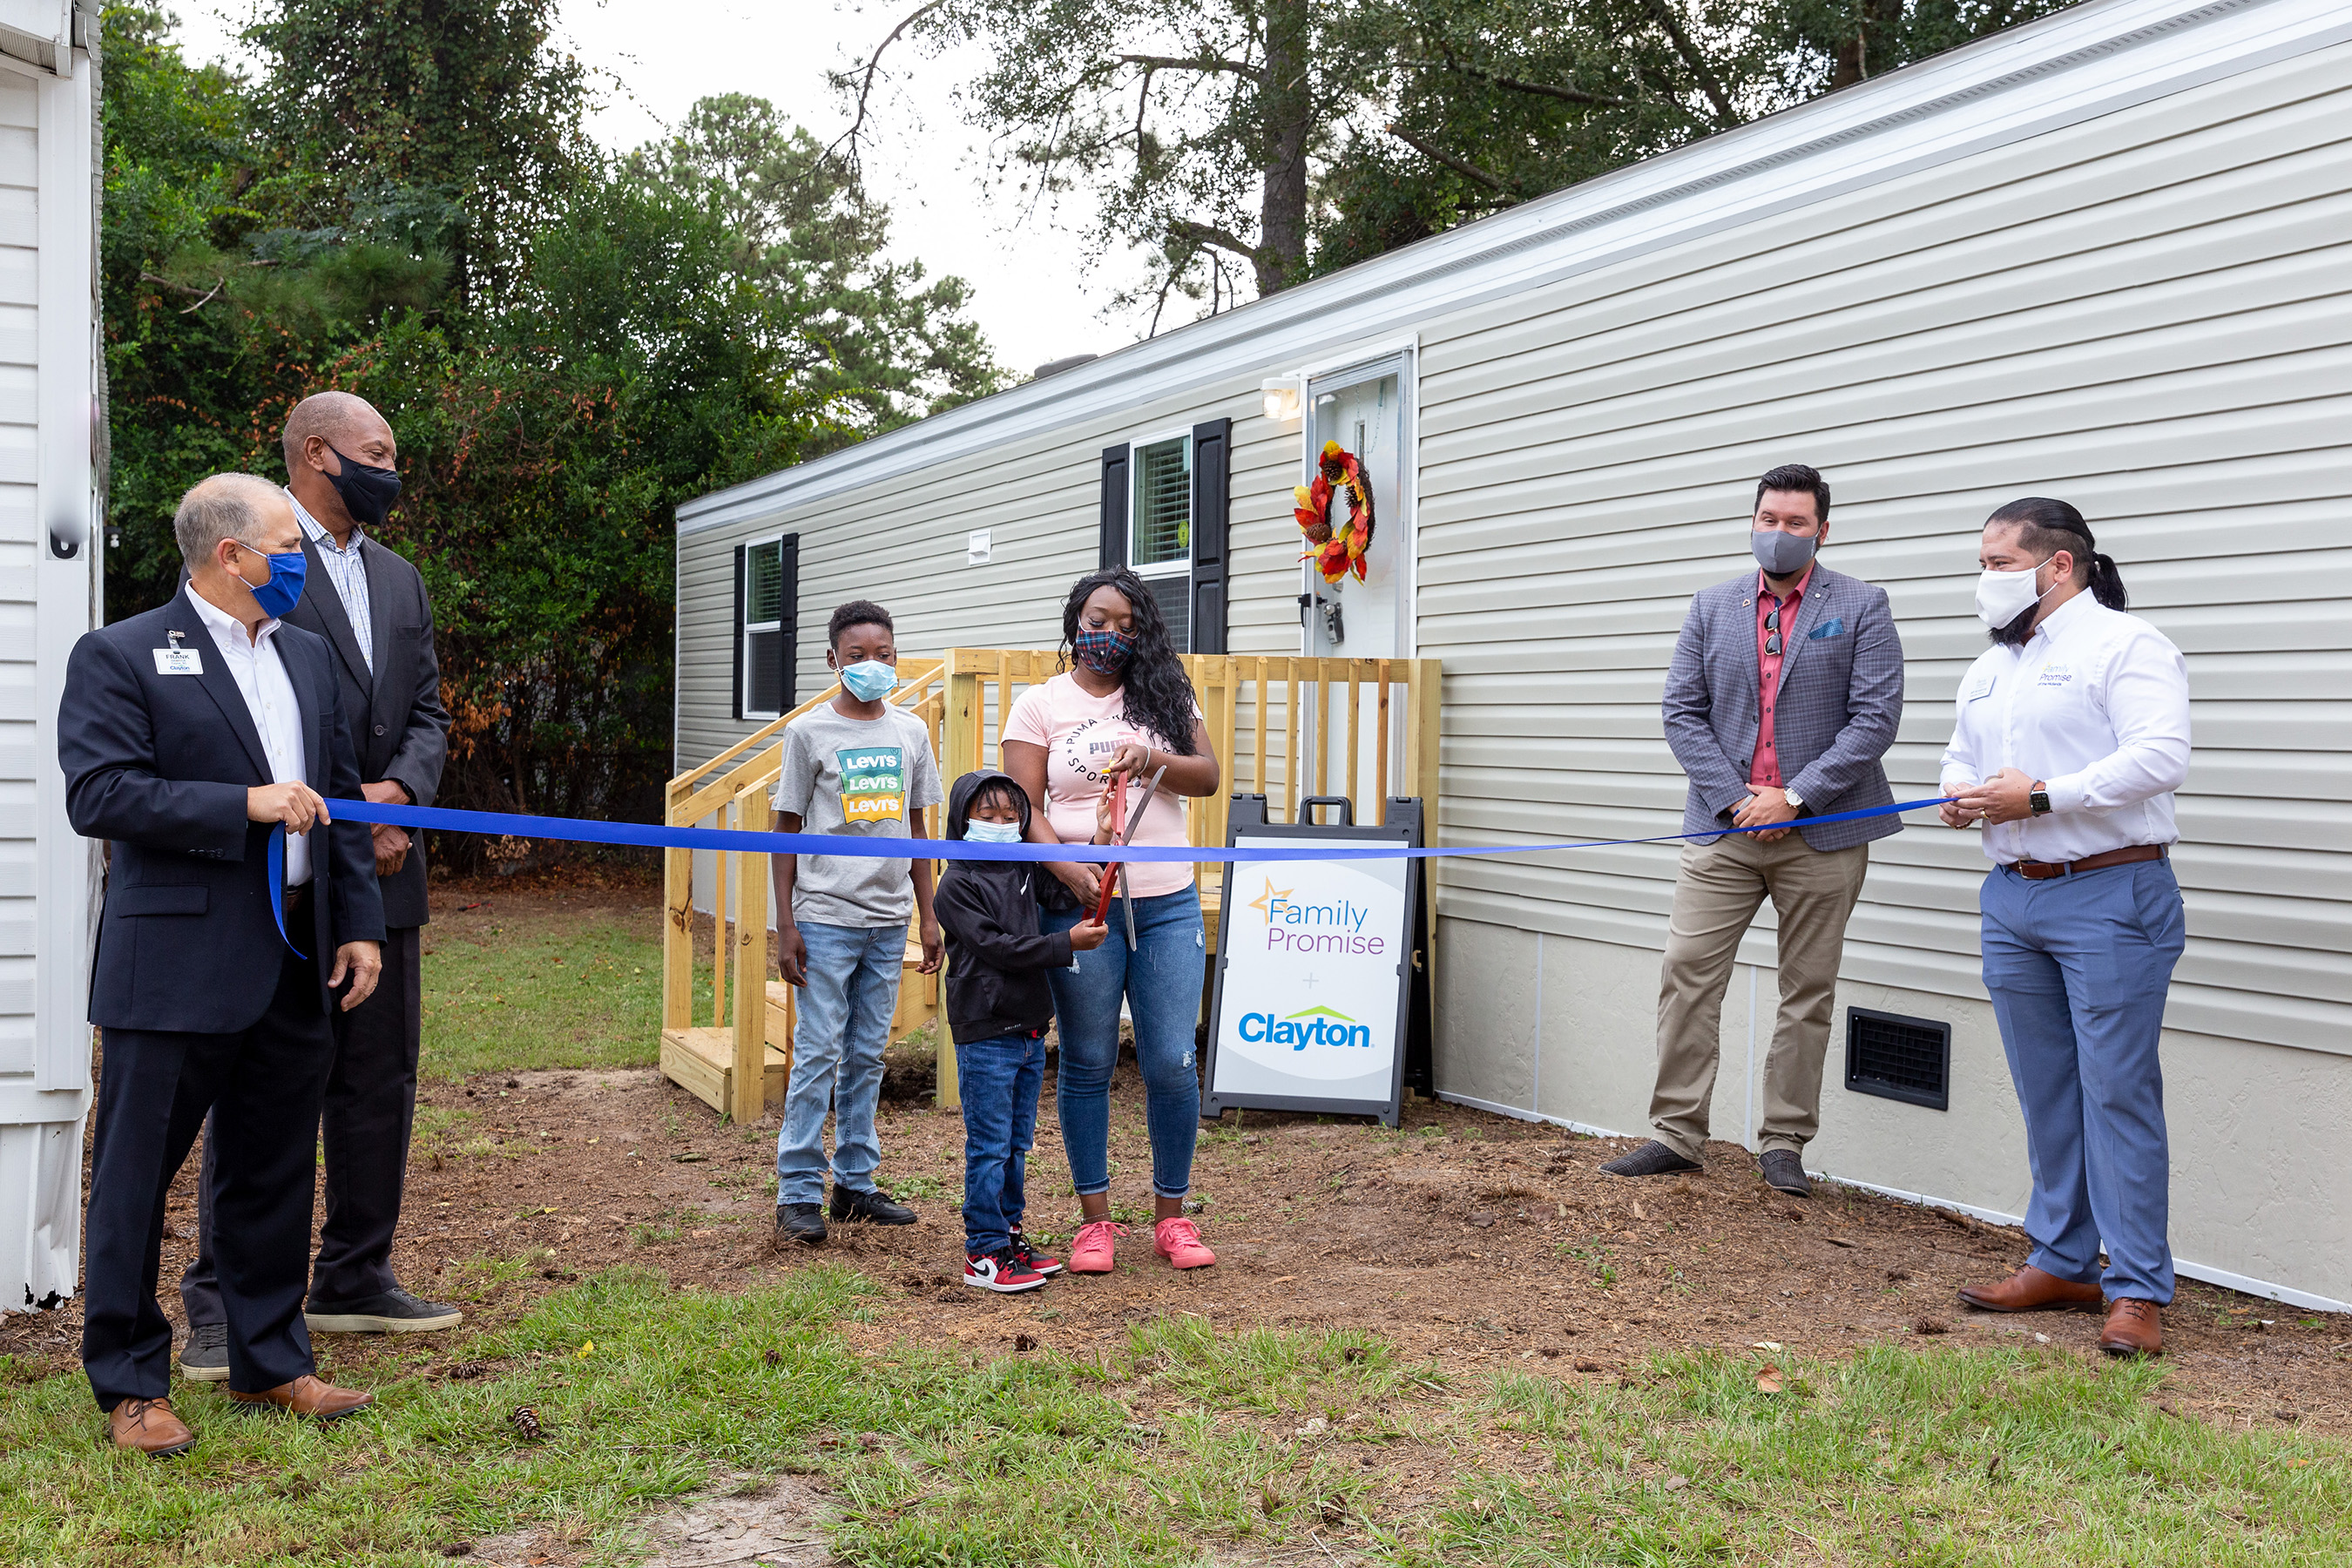 In 2020, Clayton donated the first home to be used as transitional housing. Ciara and her two children cut the ribbon as the first family to live in the home in South Carolina.